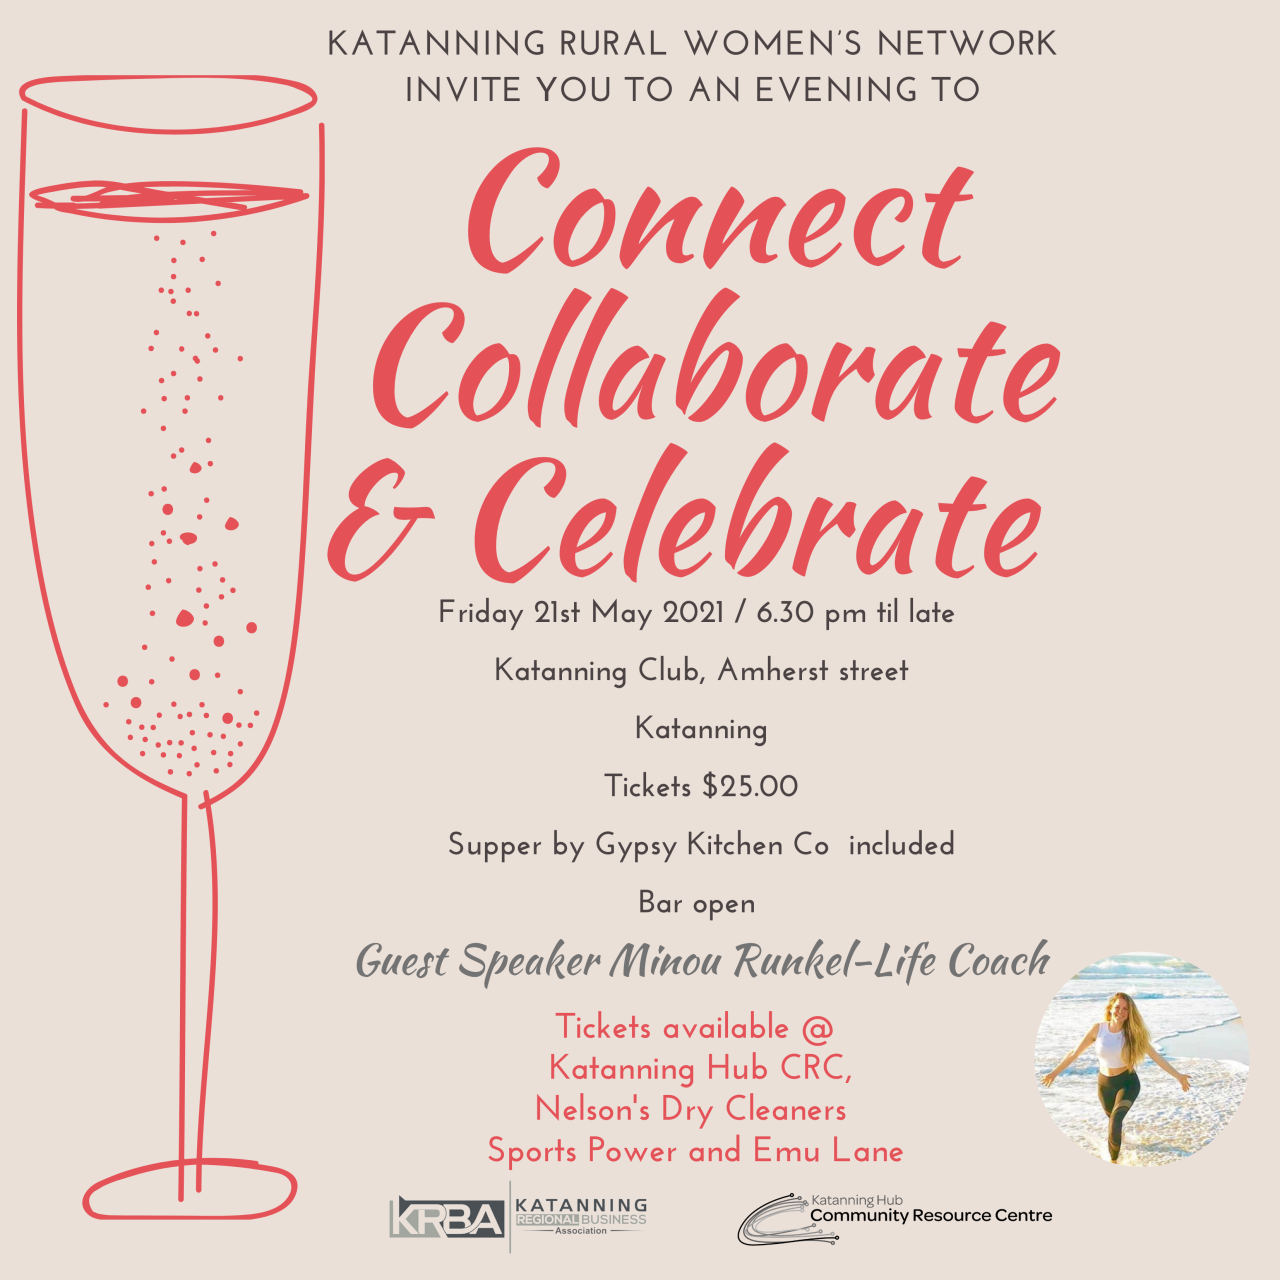 Katanning Rural Women's Network:  Connect, Collaborate & Celebrate